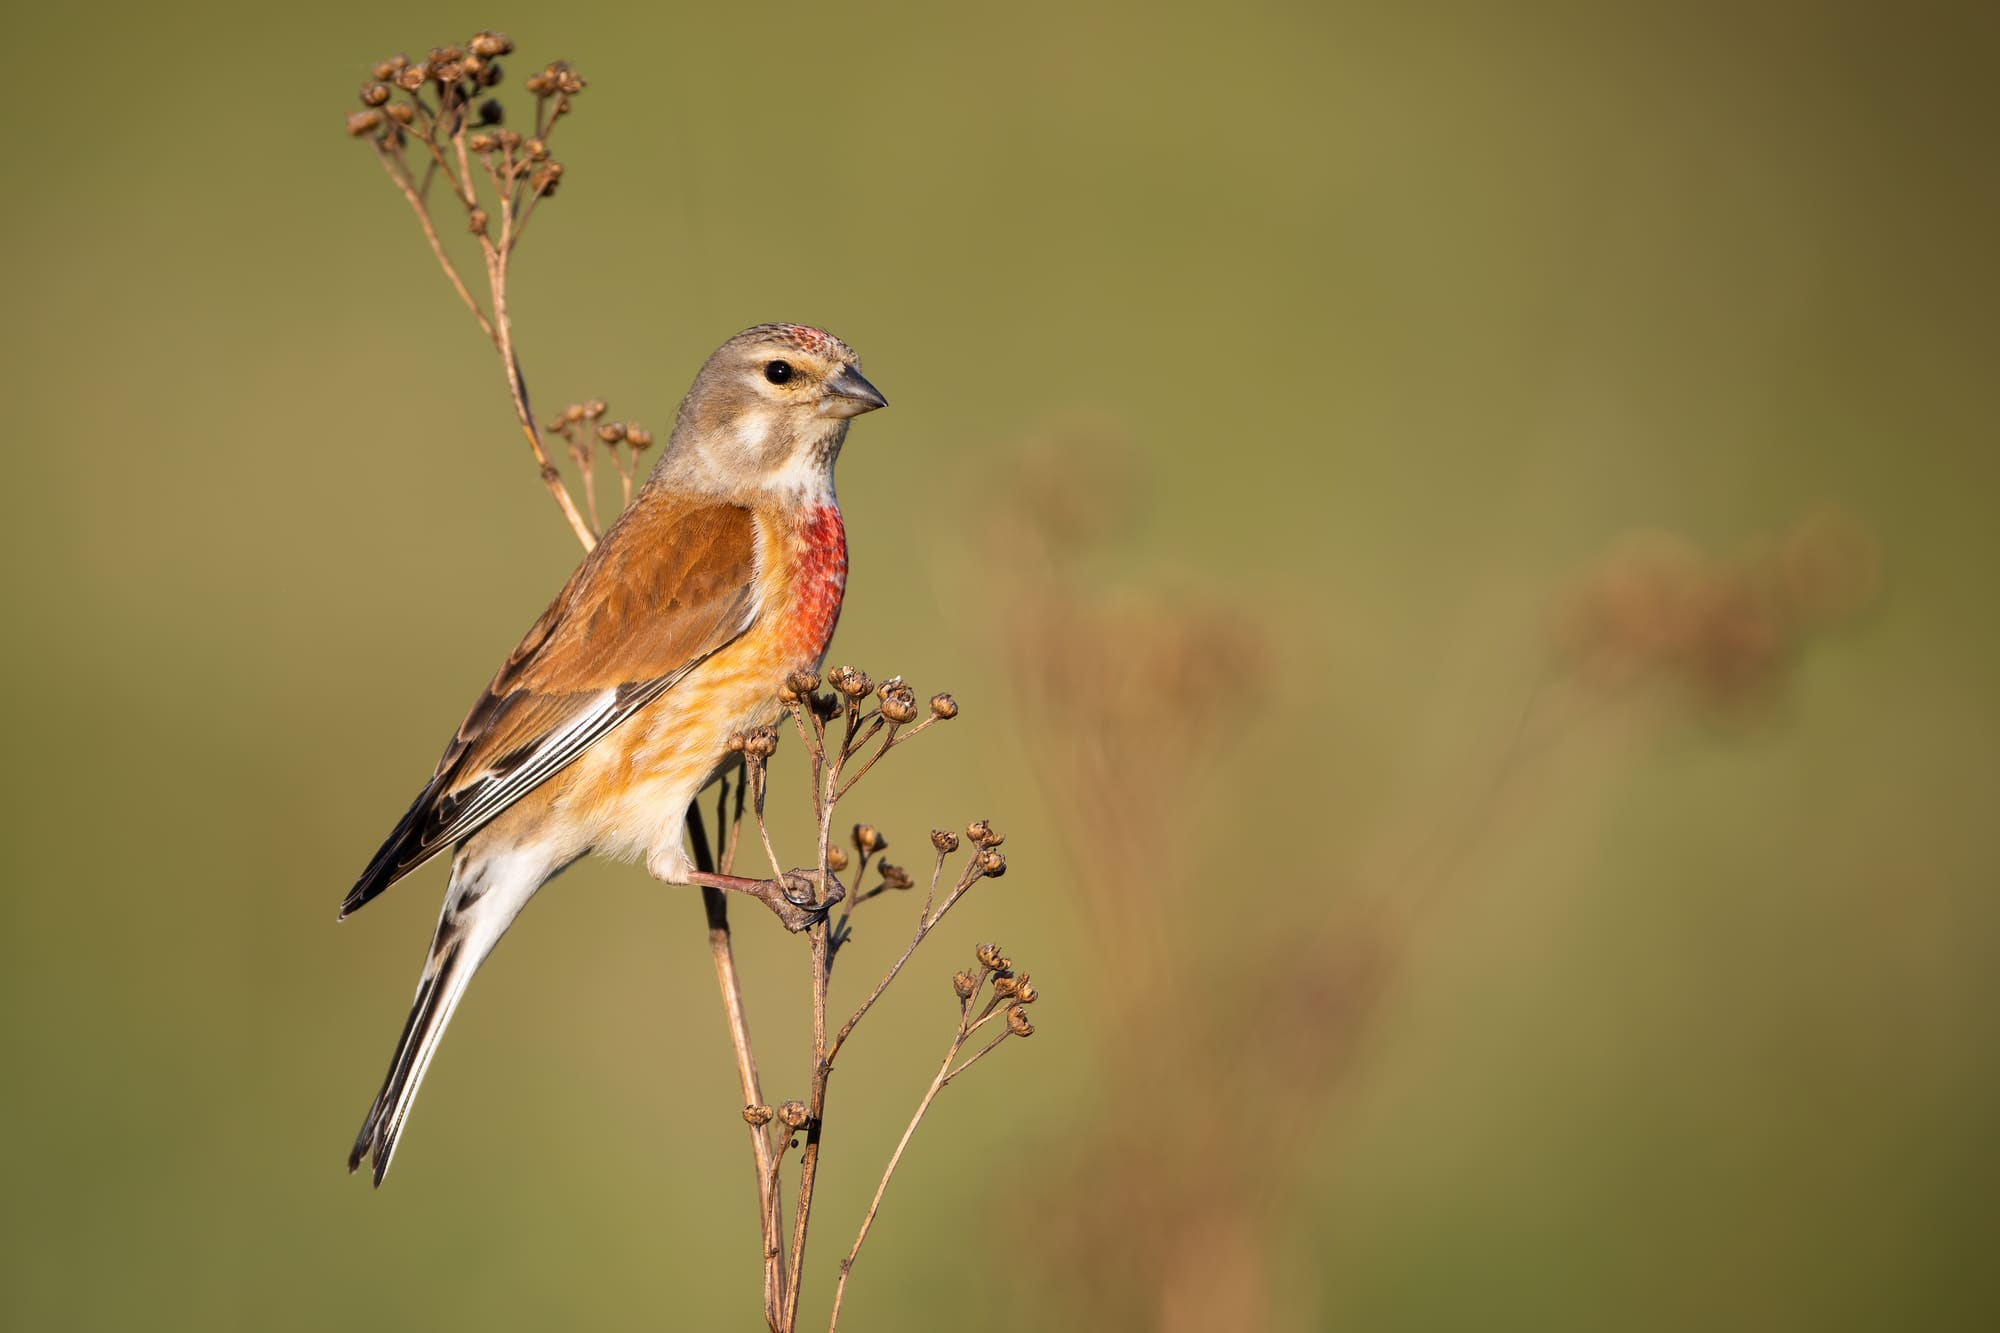 Male common linnet, linaria cannabina, resting on a plant on meadow in summer at sunset from side view with copy space.